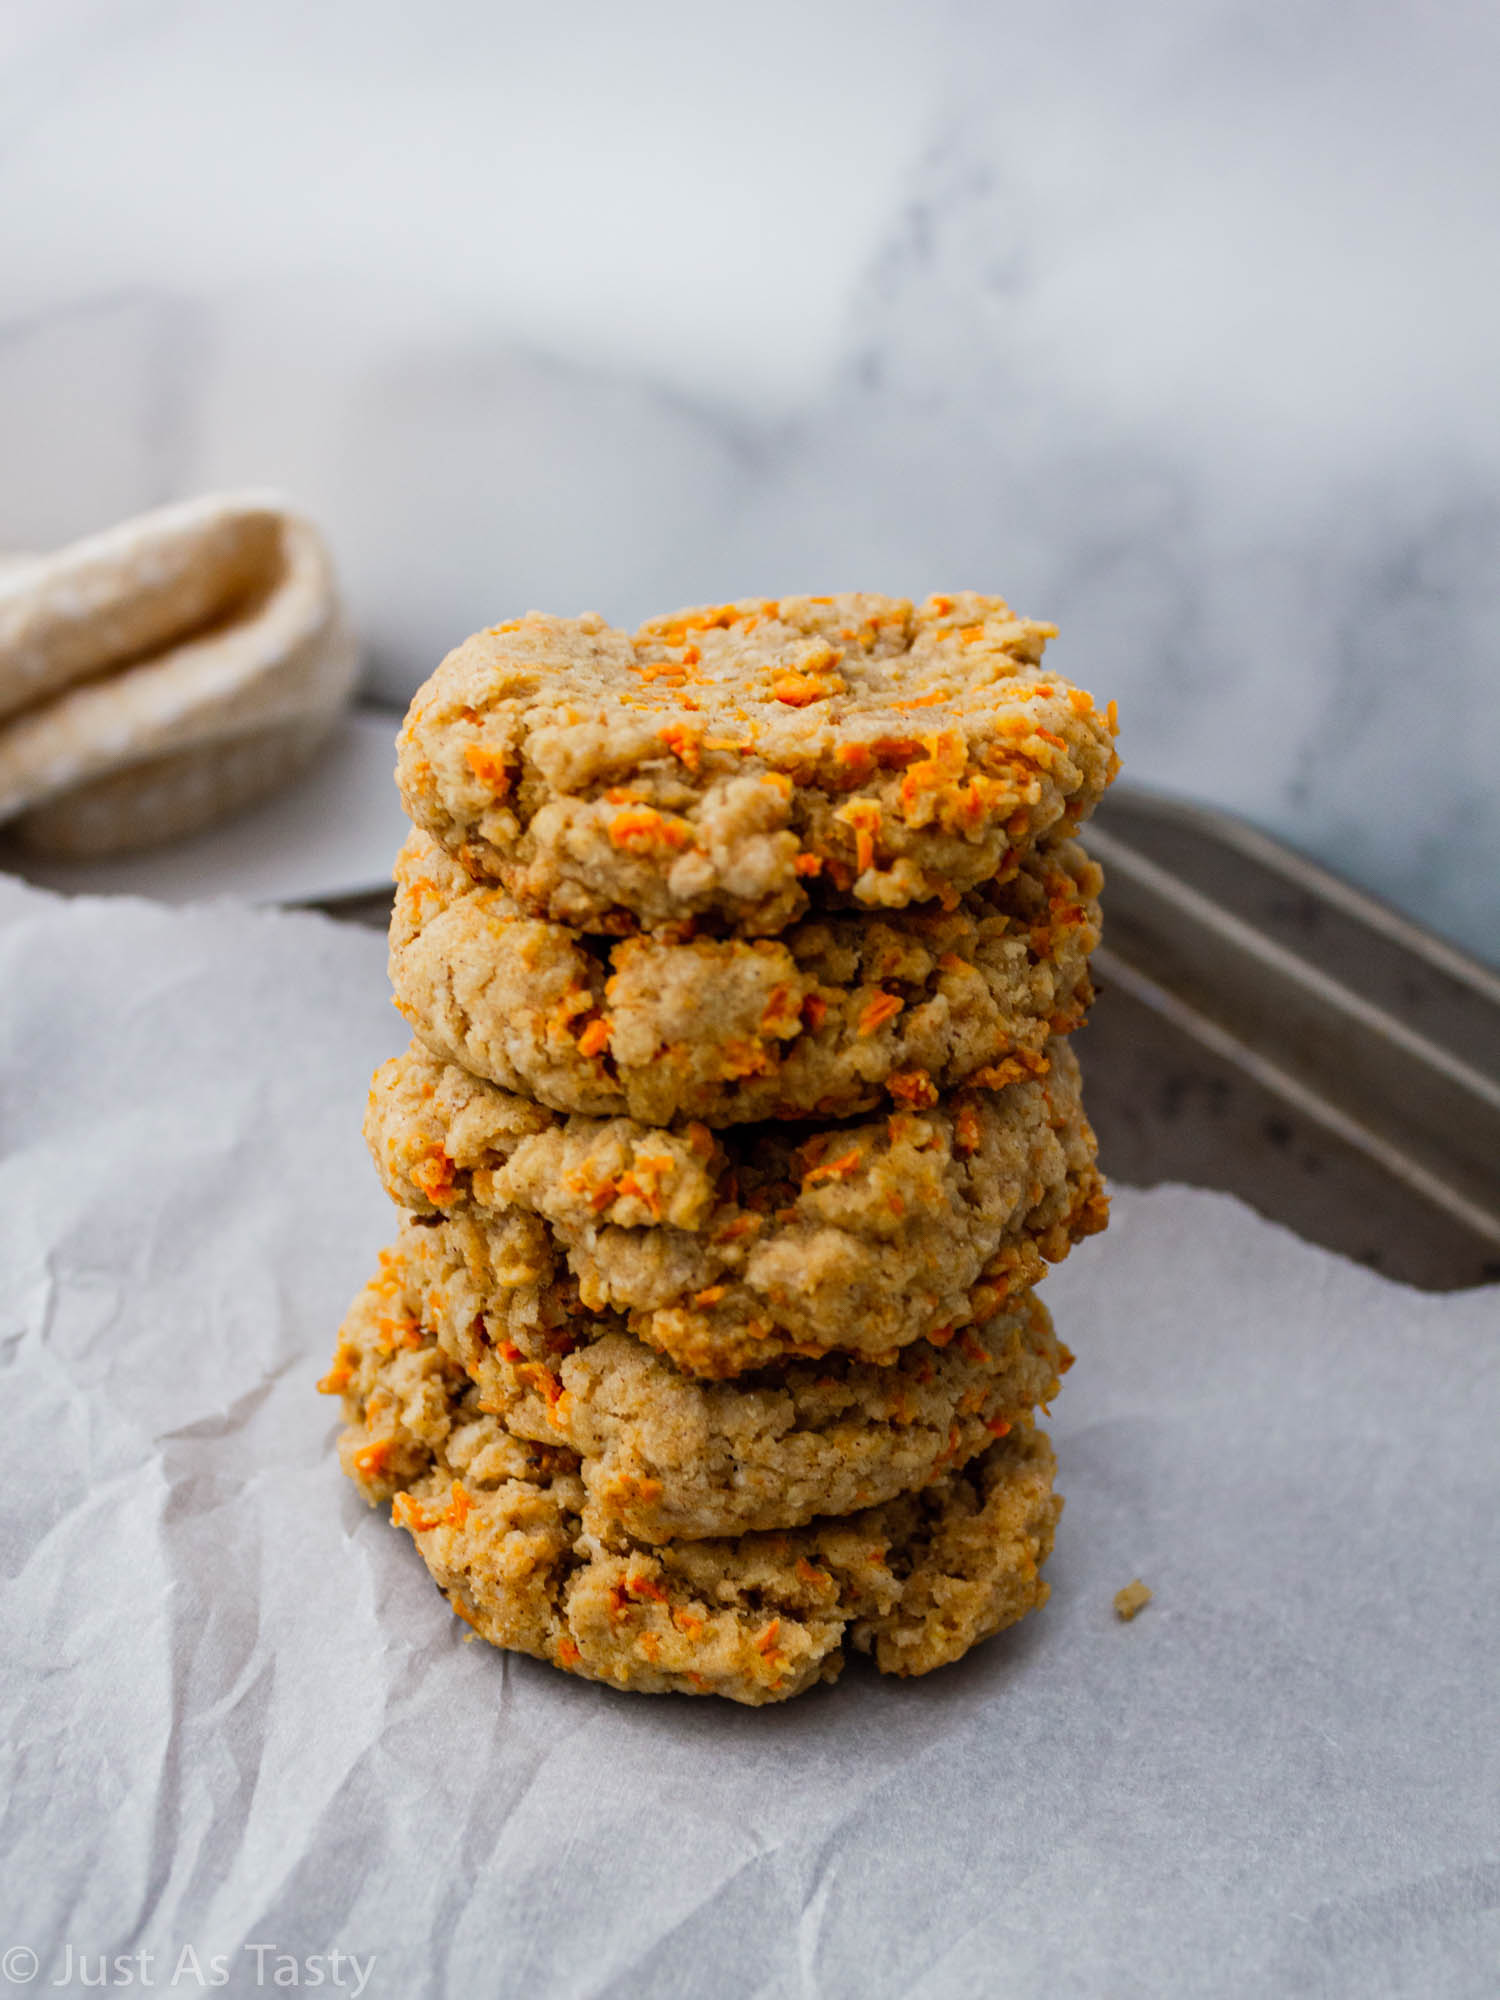 Stack of carrot cake cookies on parchment paper.